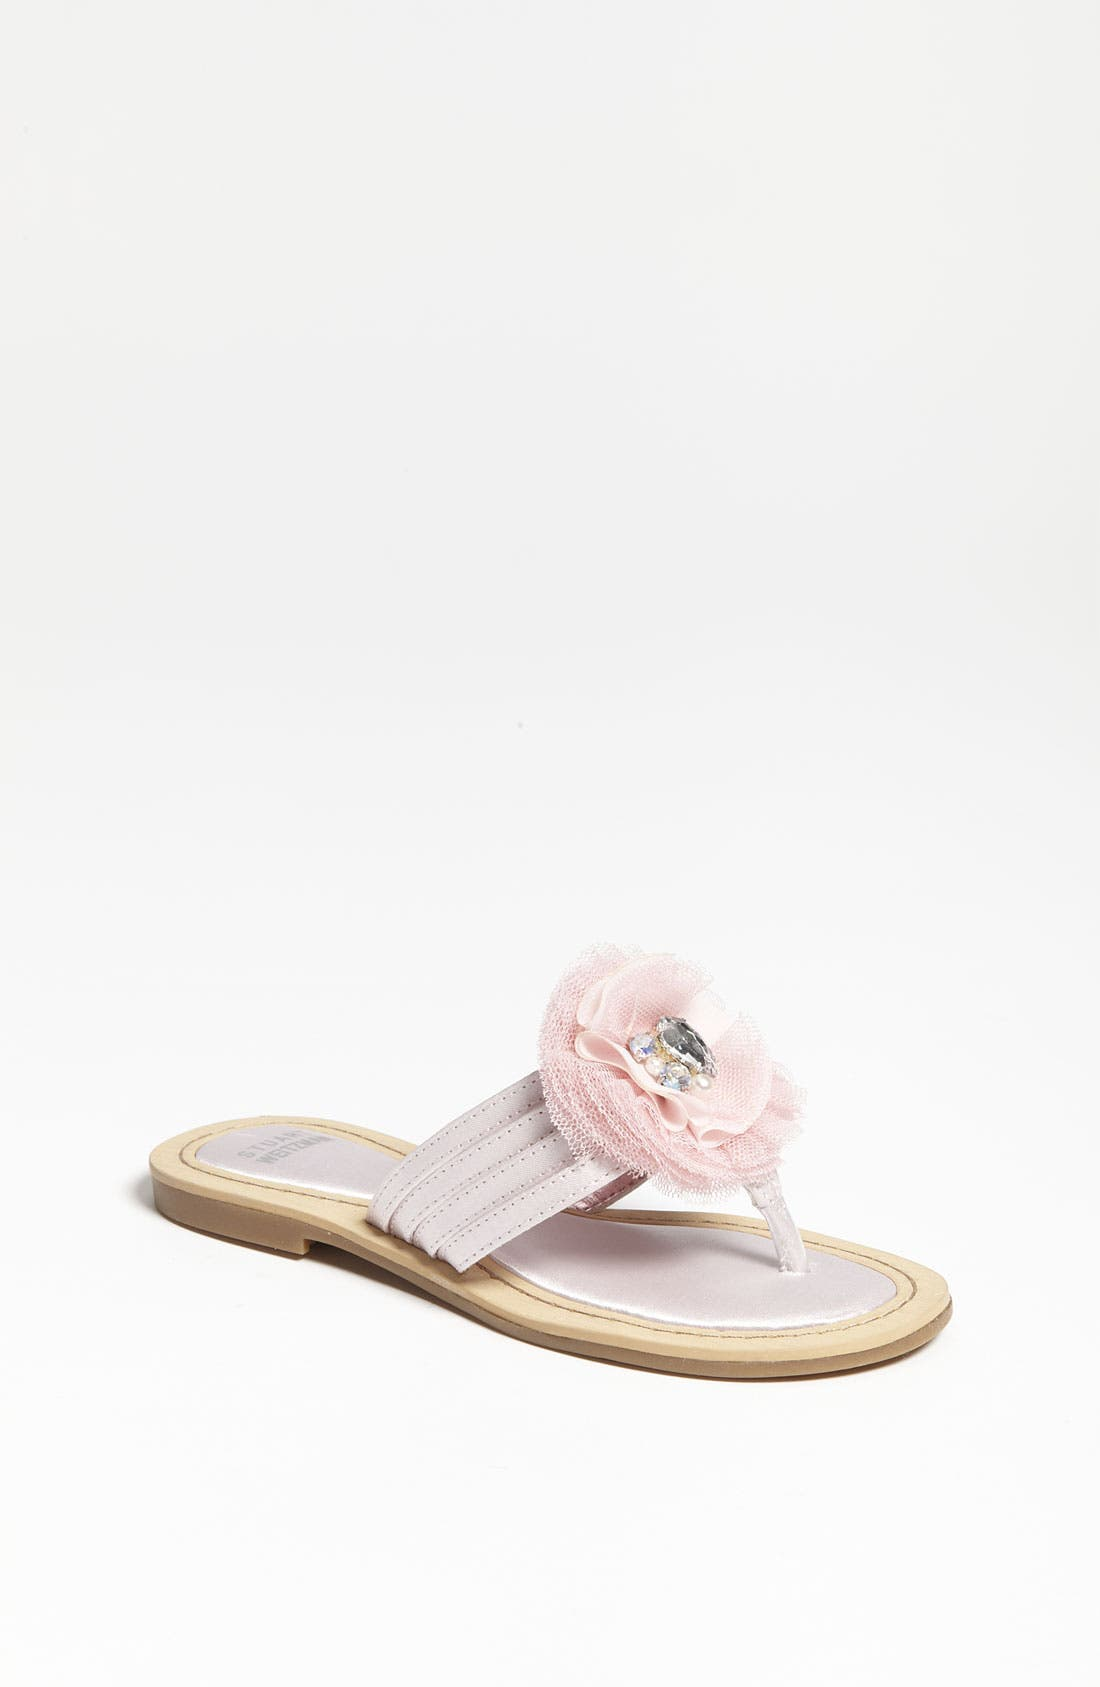 Alternate Image 1 Selected - Stuart Weitzman 'Tutu' Sandal (Toddler, Little Kid & Big Kid)